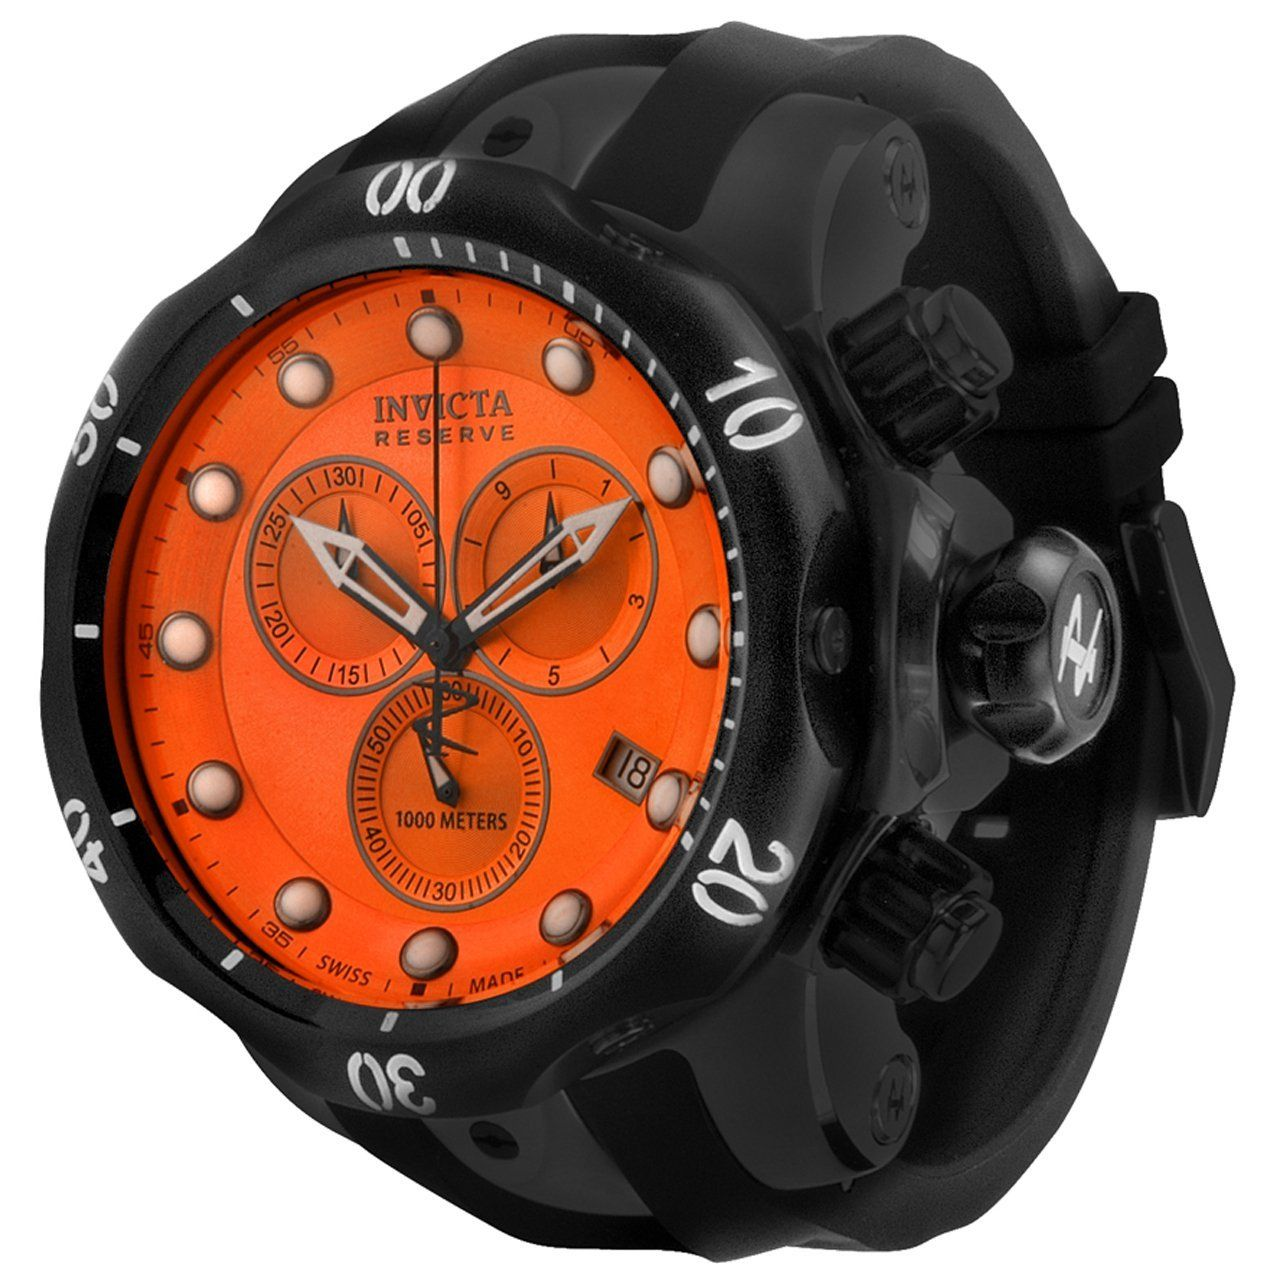 41c1759a6bf Invicta Men s 5735 Reserve Collection Black Ion-Plated Chronograph Watch